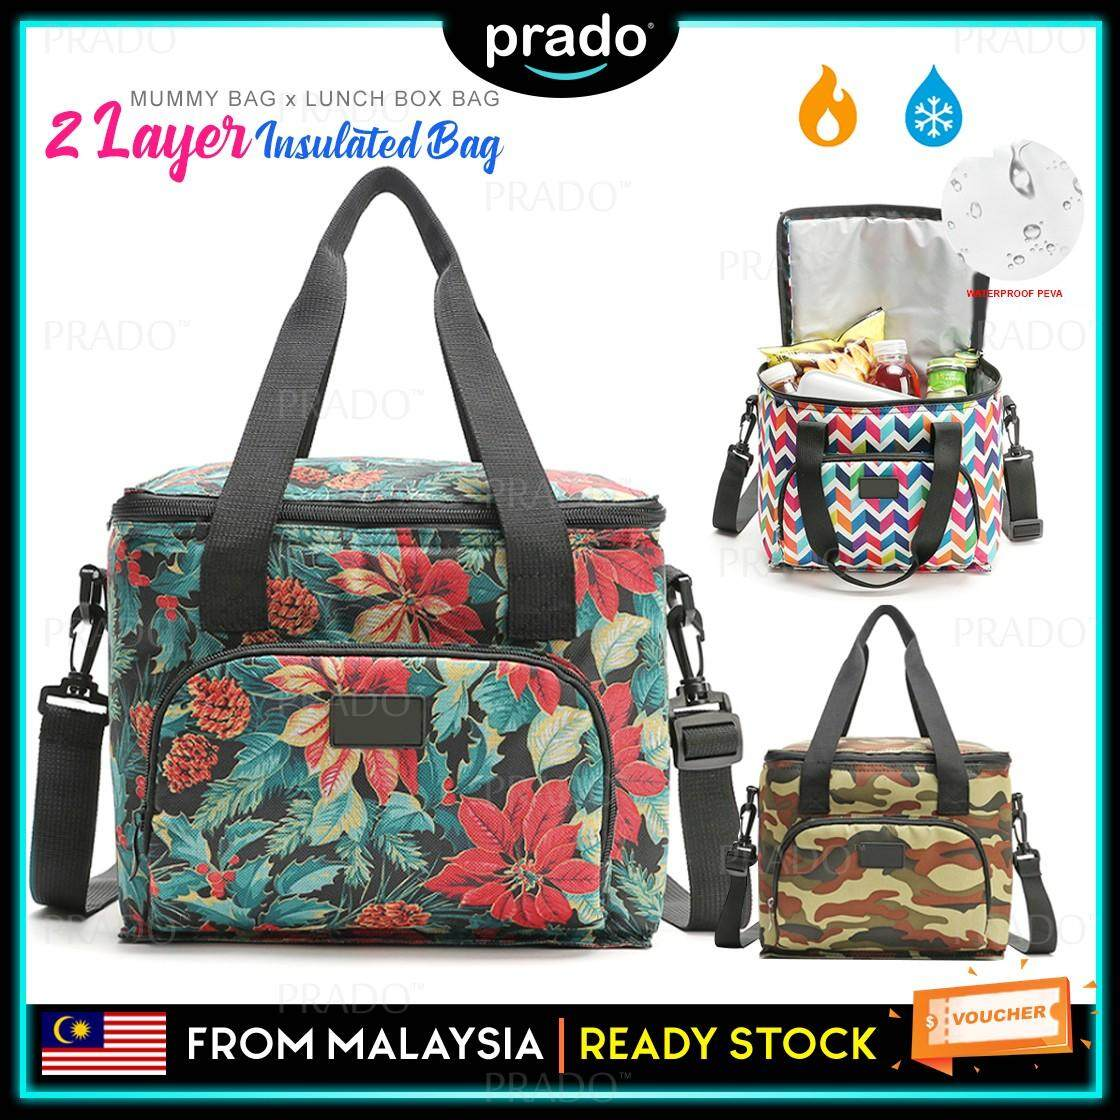 PRADO Malaysia Portable Dual Section Design 2 Layer Sling Insulated & Cooler Bag For Mummy Breastmilk Storage Feeding Bag Picnic Tote Lunch Box Beg CL8108